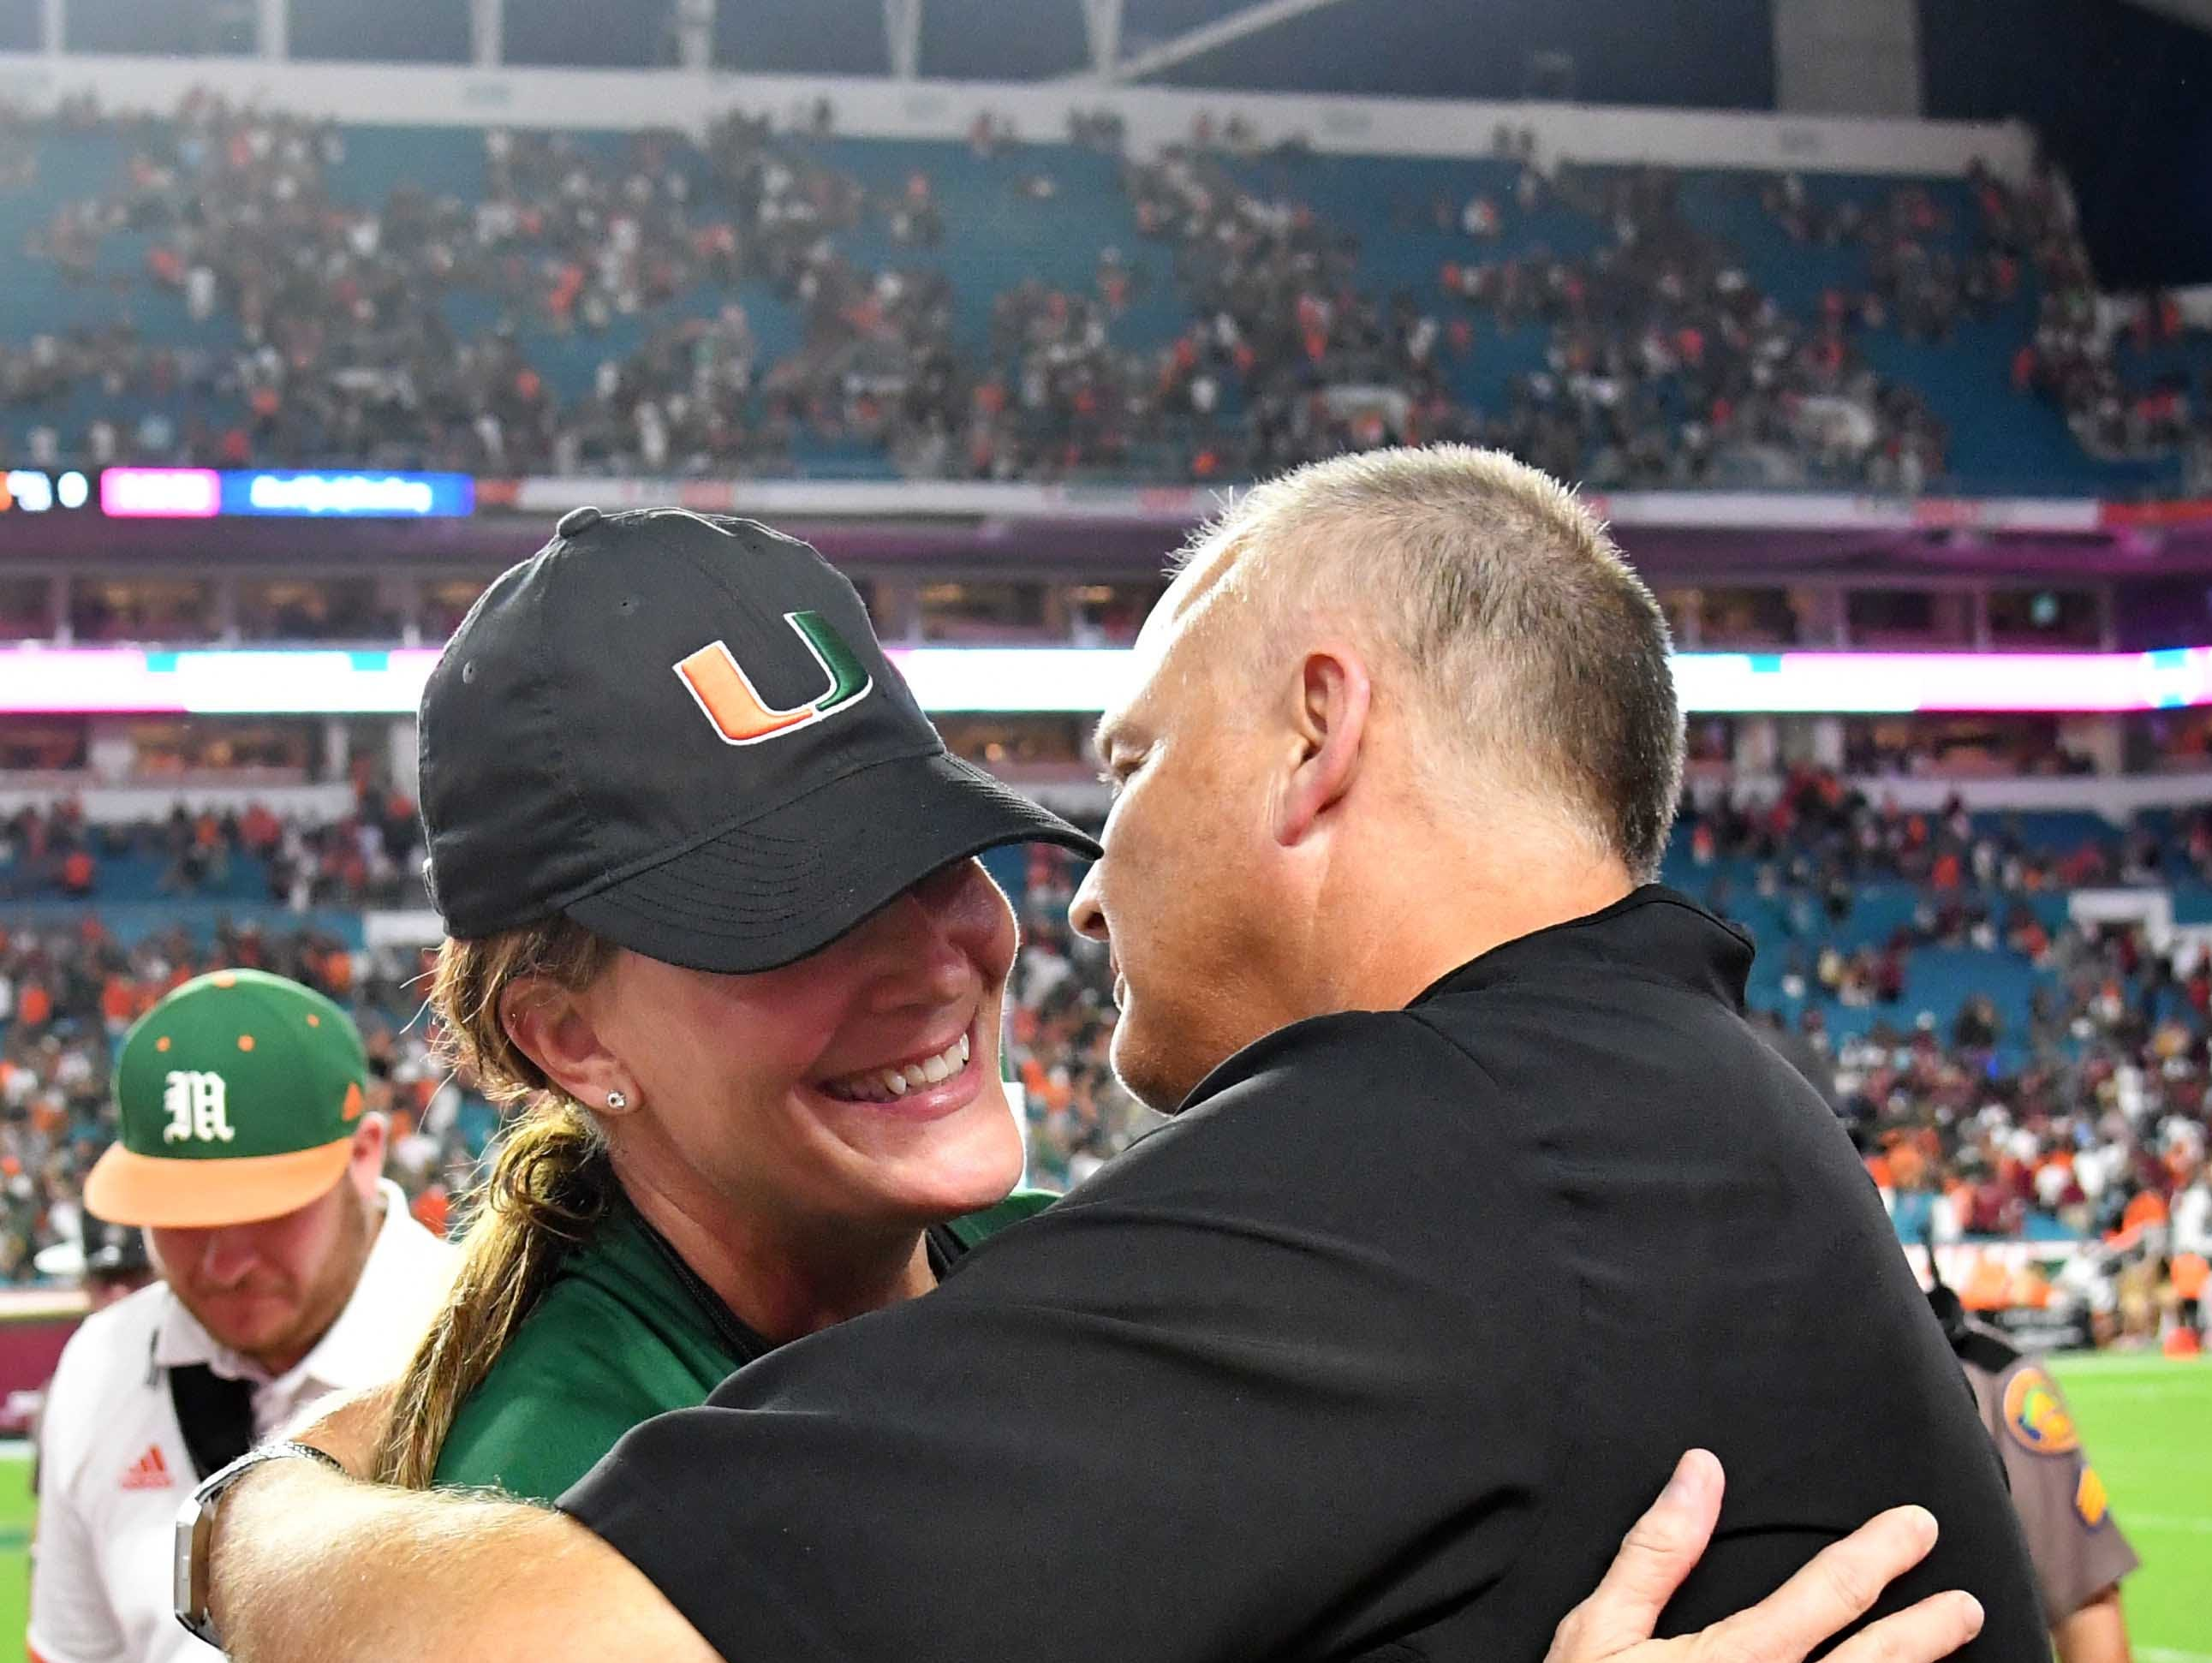 Oct 6, 2018; Miami Gardens, FL, USA; Miami Hurricanes head coach Mark Richt hugs his wife Katharyn Francis after defeating Florida State Seminoles at Hard Rock Stadium. Mandatory Credit: Steve Mitchell-USA TODAY Sports